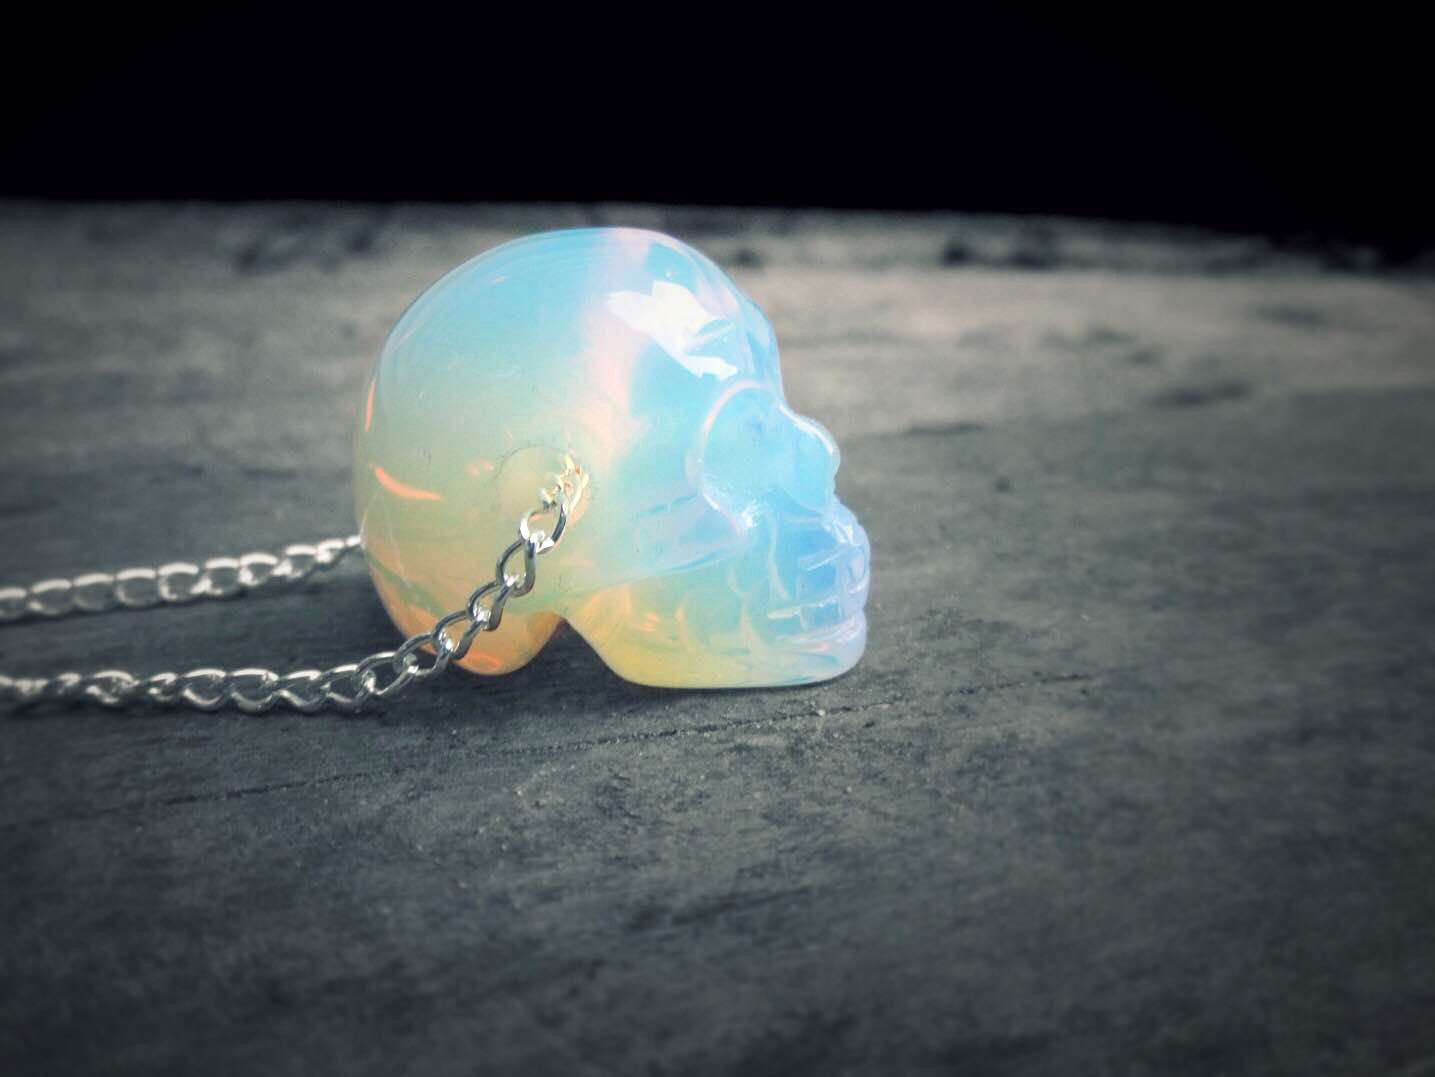 Crystal Skull Necklace // Holographic Opal Skull // Opal Quartz Necklace // Carved Opalite Human Skull // Pastel Grunge, Goth, Boho, Punk #quartznecklace